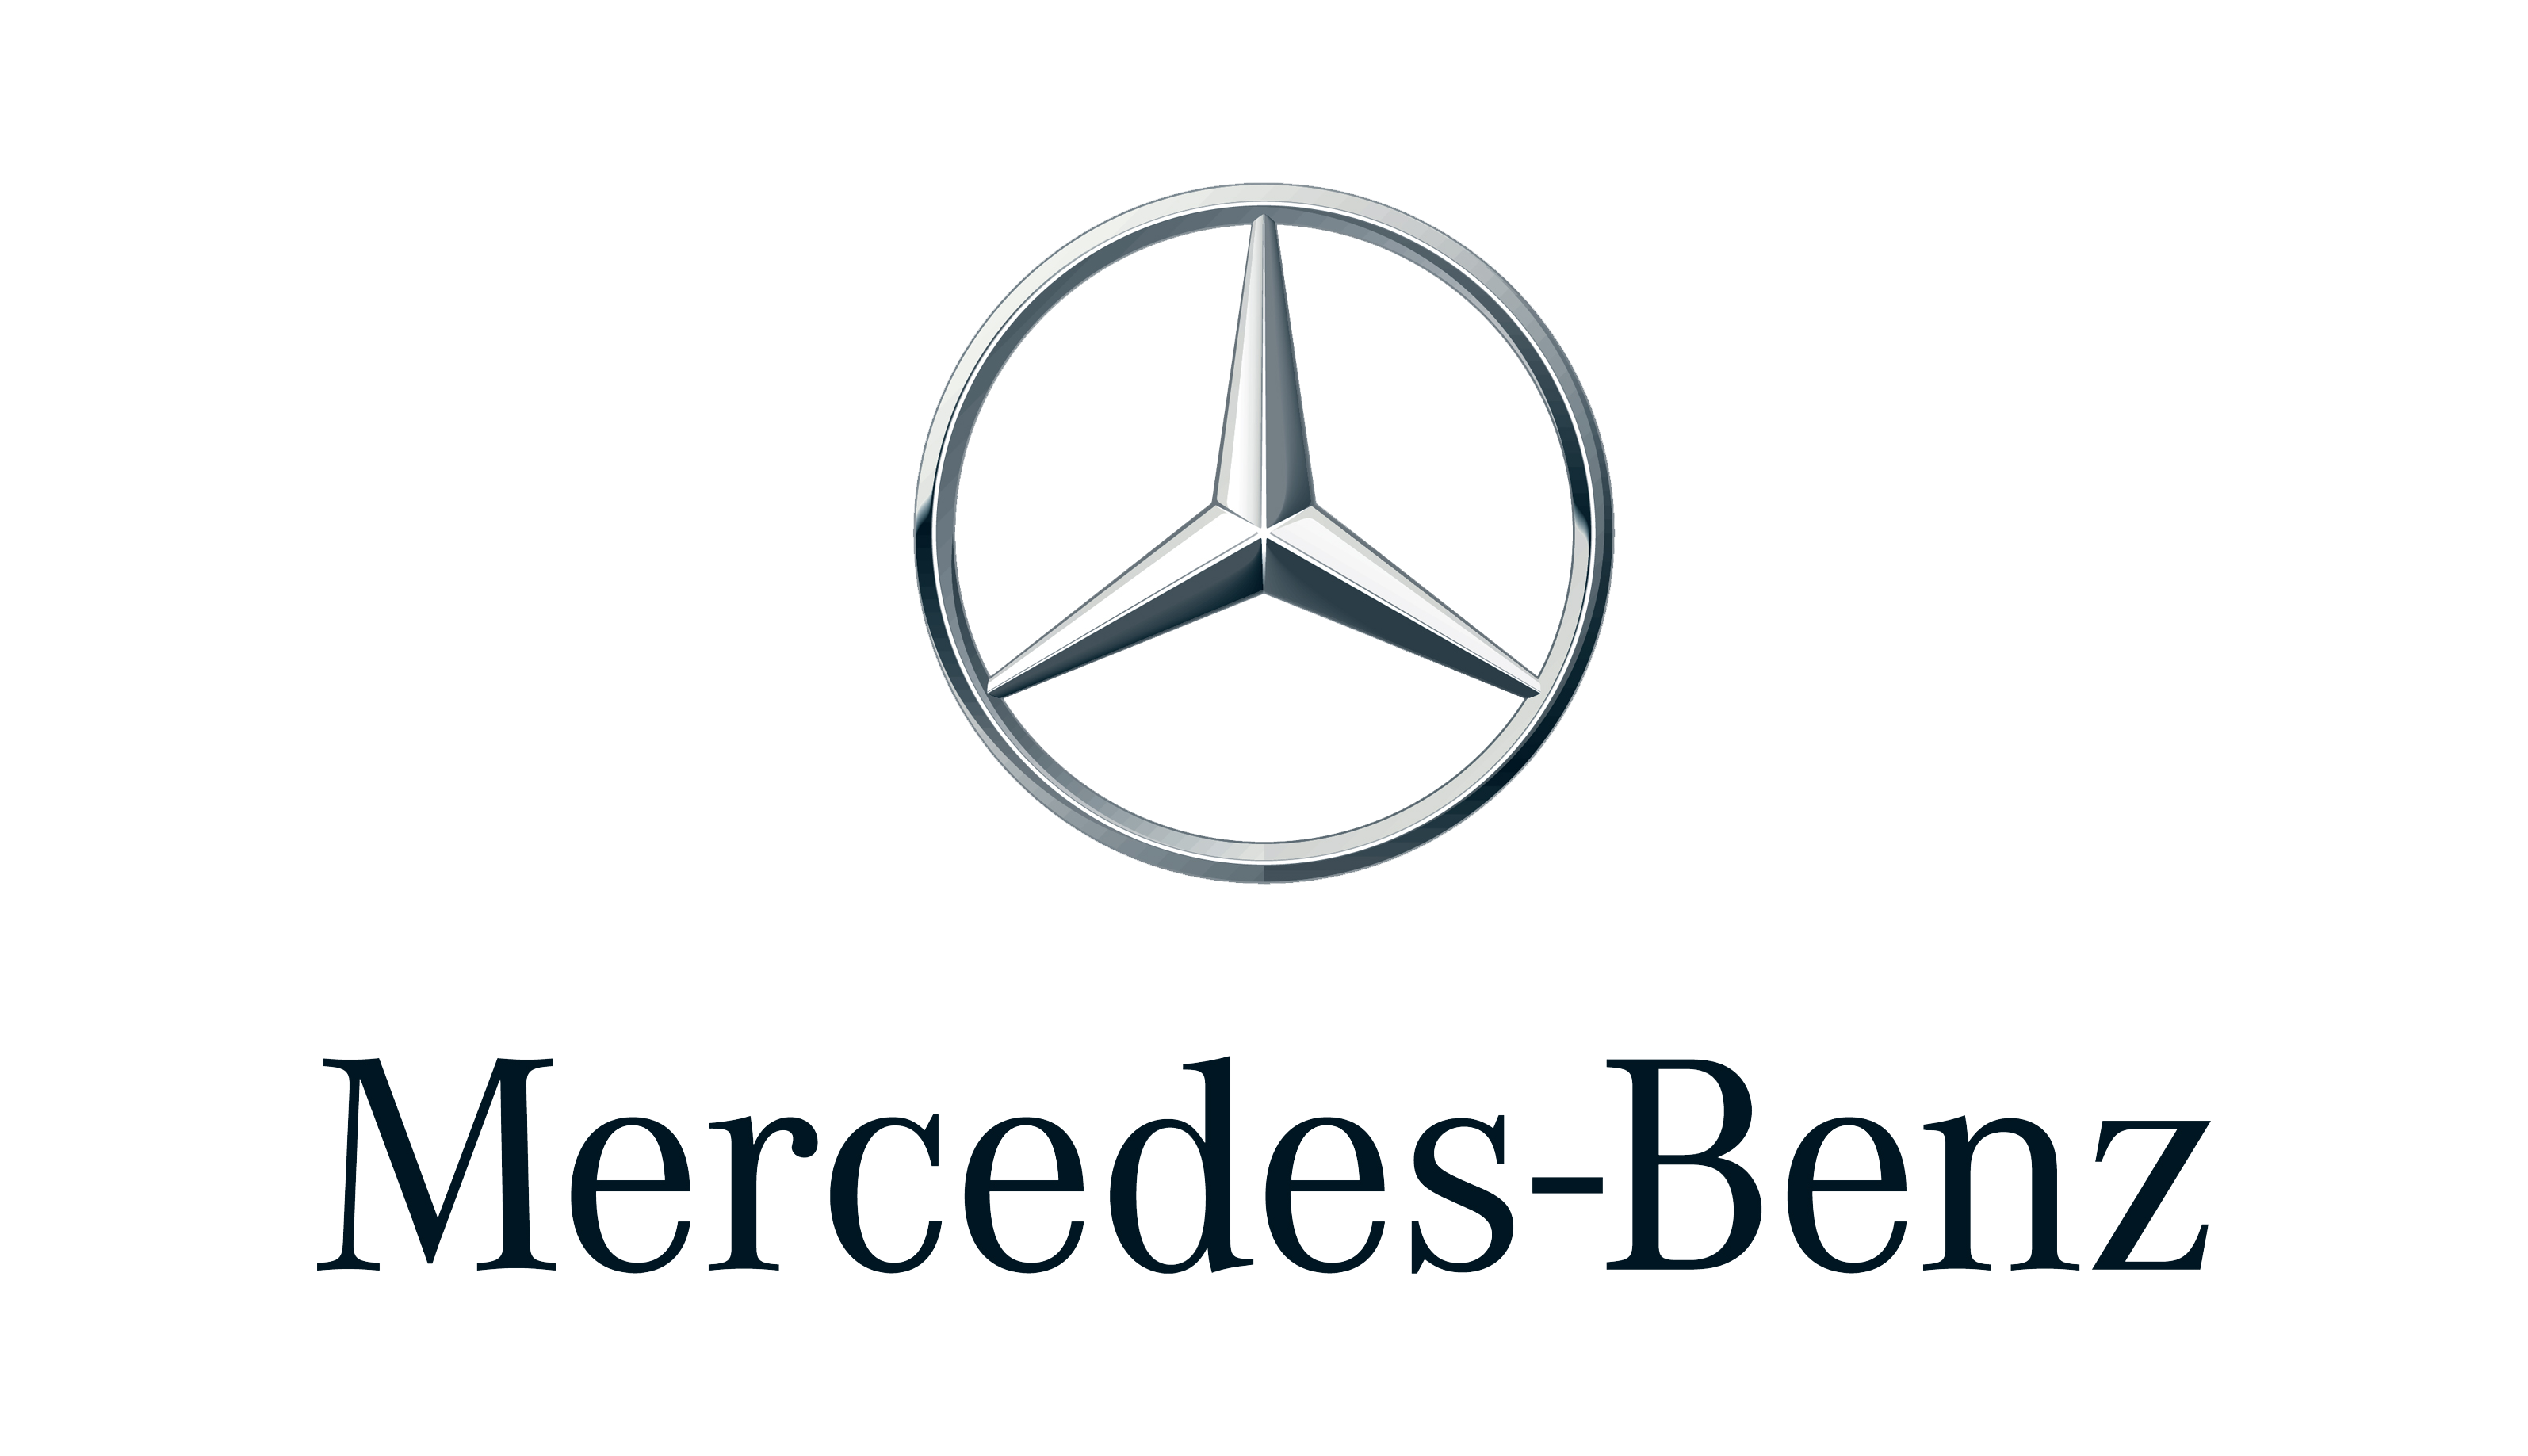 Download For Free Mercedes Benz Logo Png In High Resolution